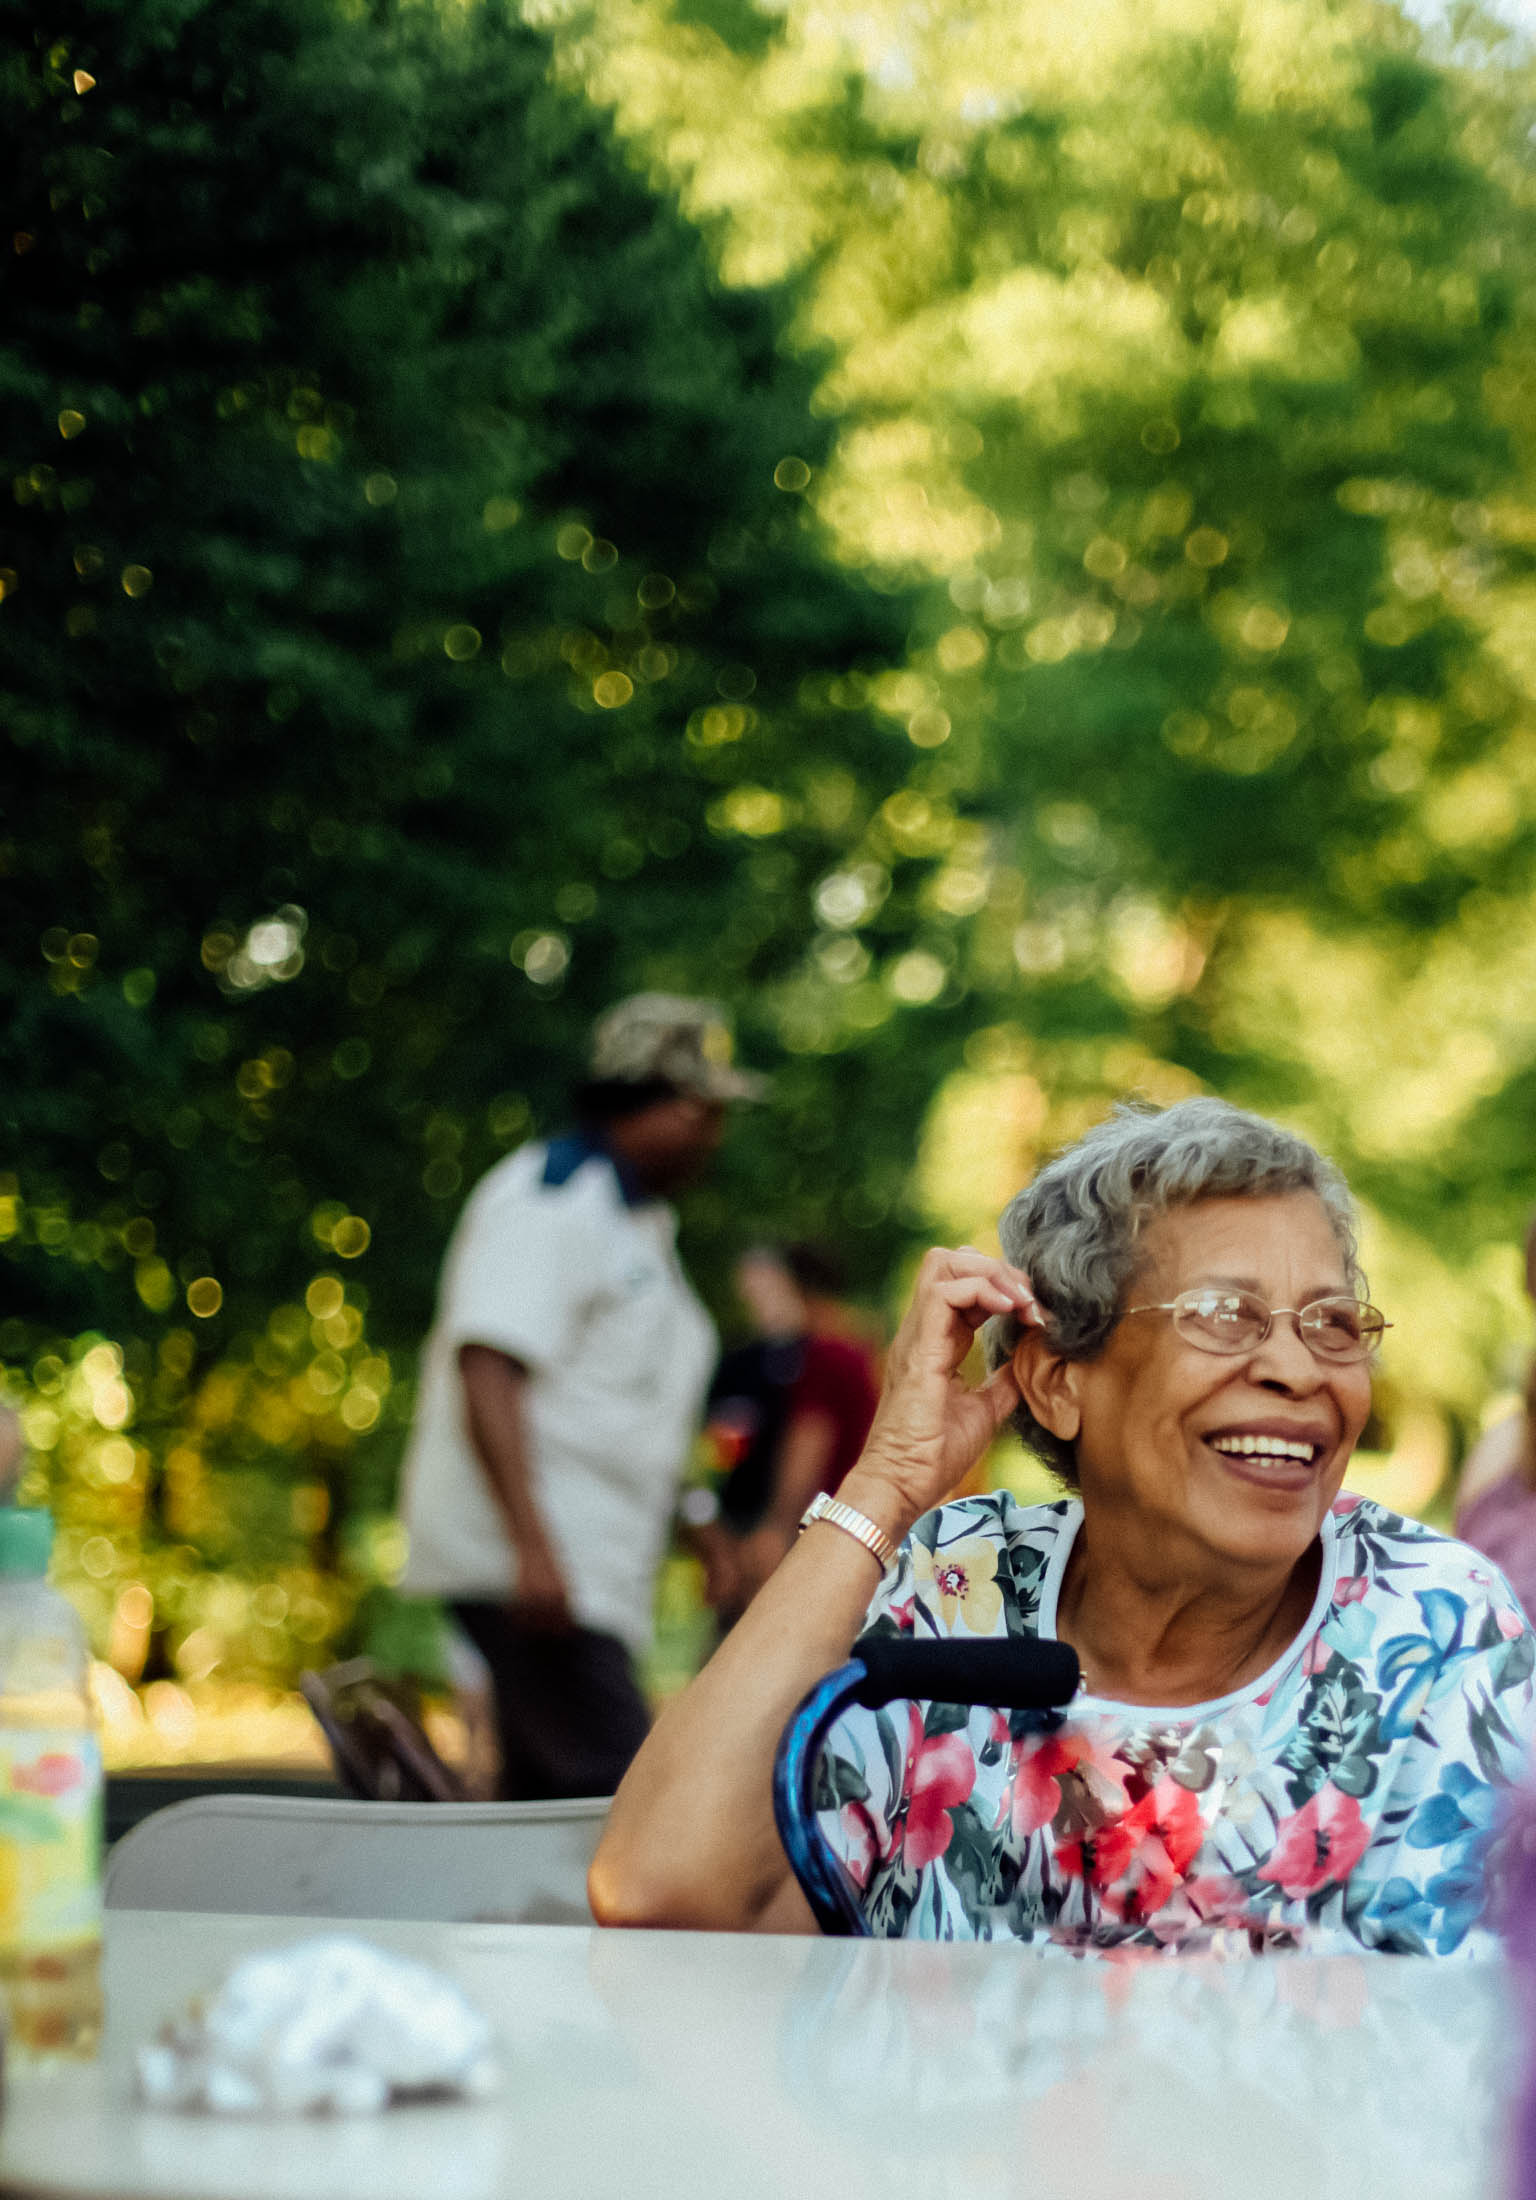 The United States is home to 8.7 million widows. Over half of the women over 65 years of age are widows. 7 out of 10 of these women live alone. Considerations have to be made for how to care for them, especially when they don't have families of their own.